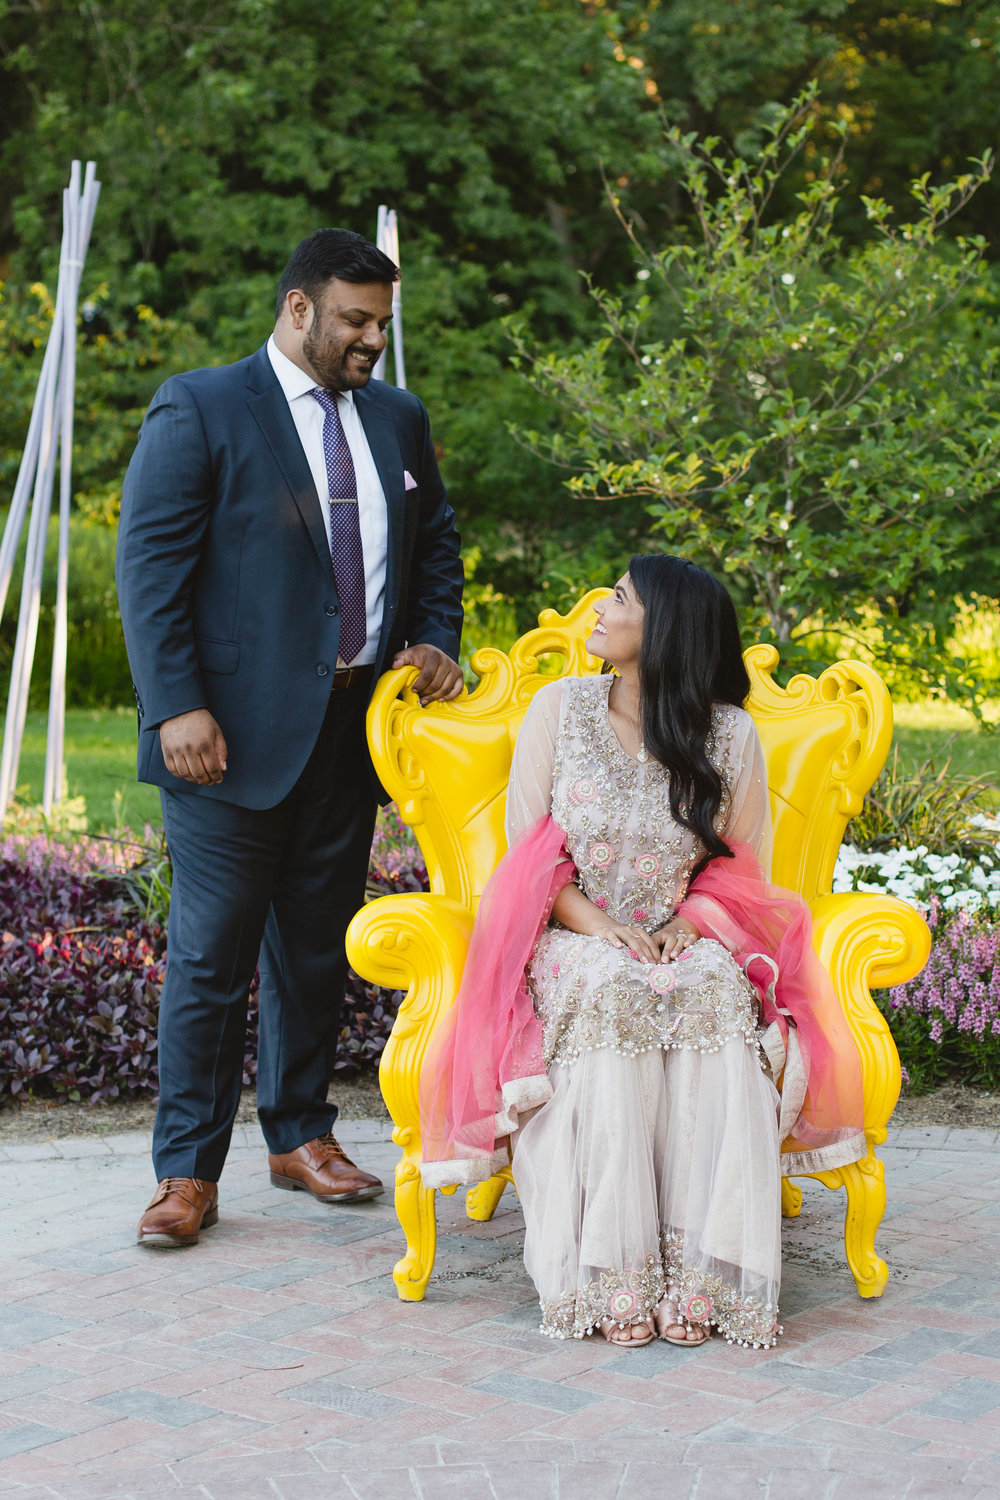 Cantigny Park Wheaton Engagement Photo Session